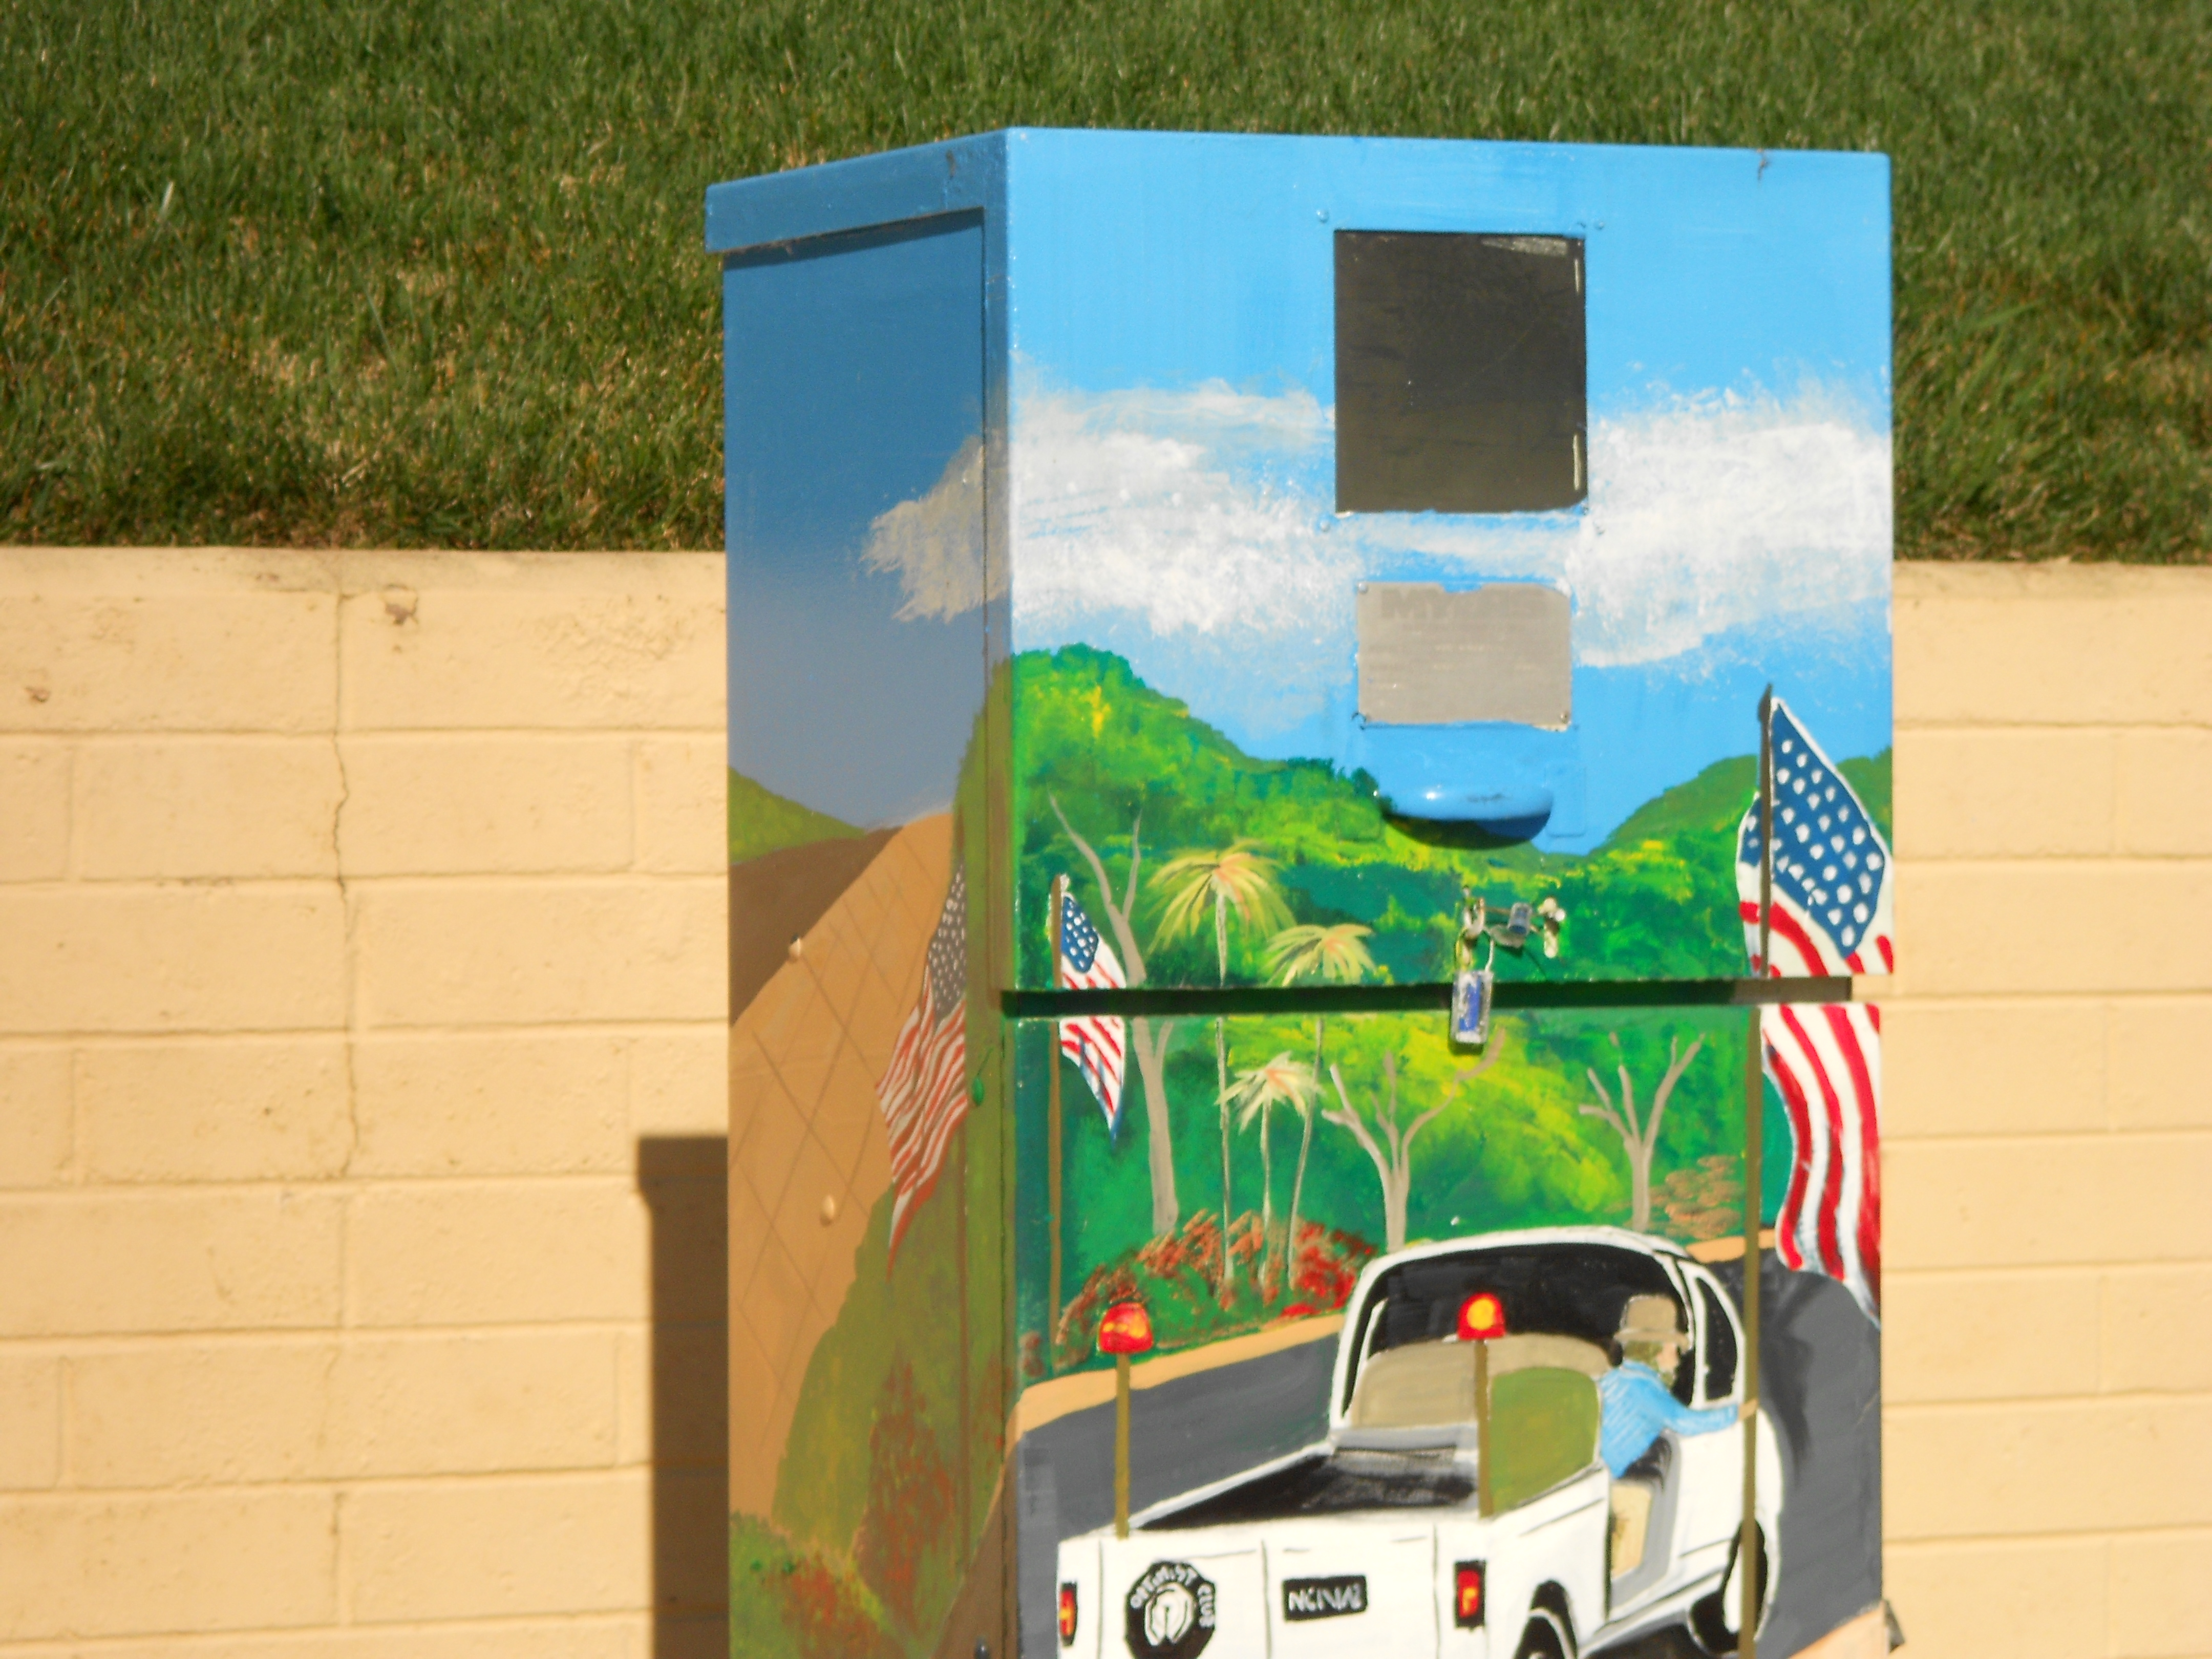 Utility box art near Silvergate Elementary school.